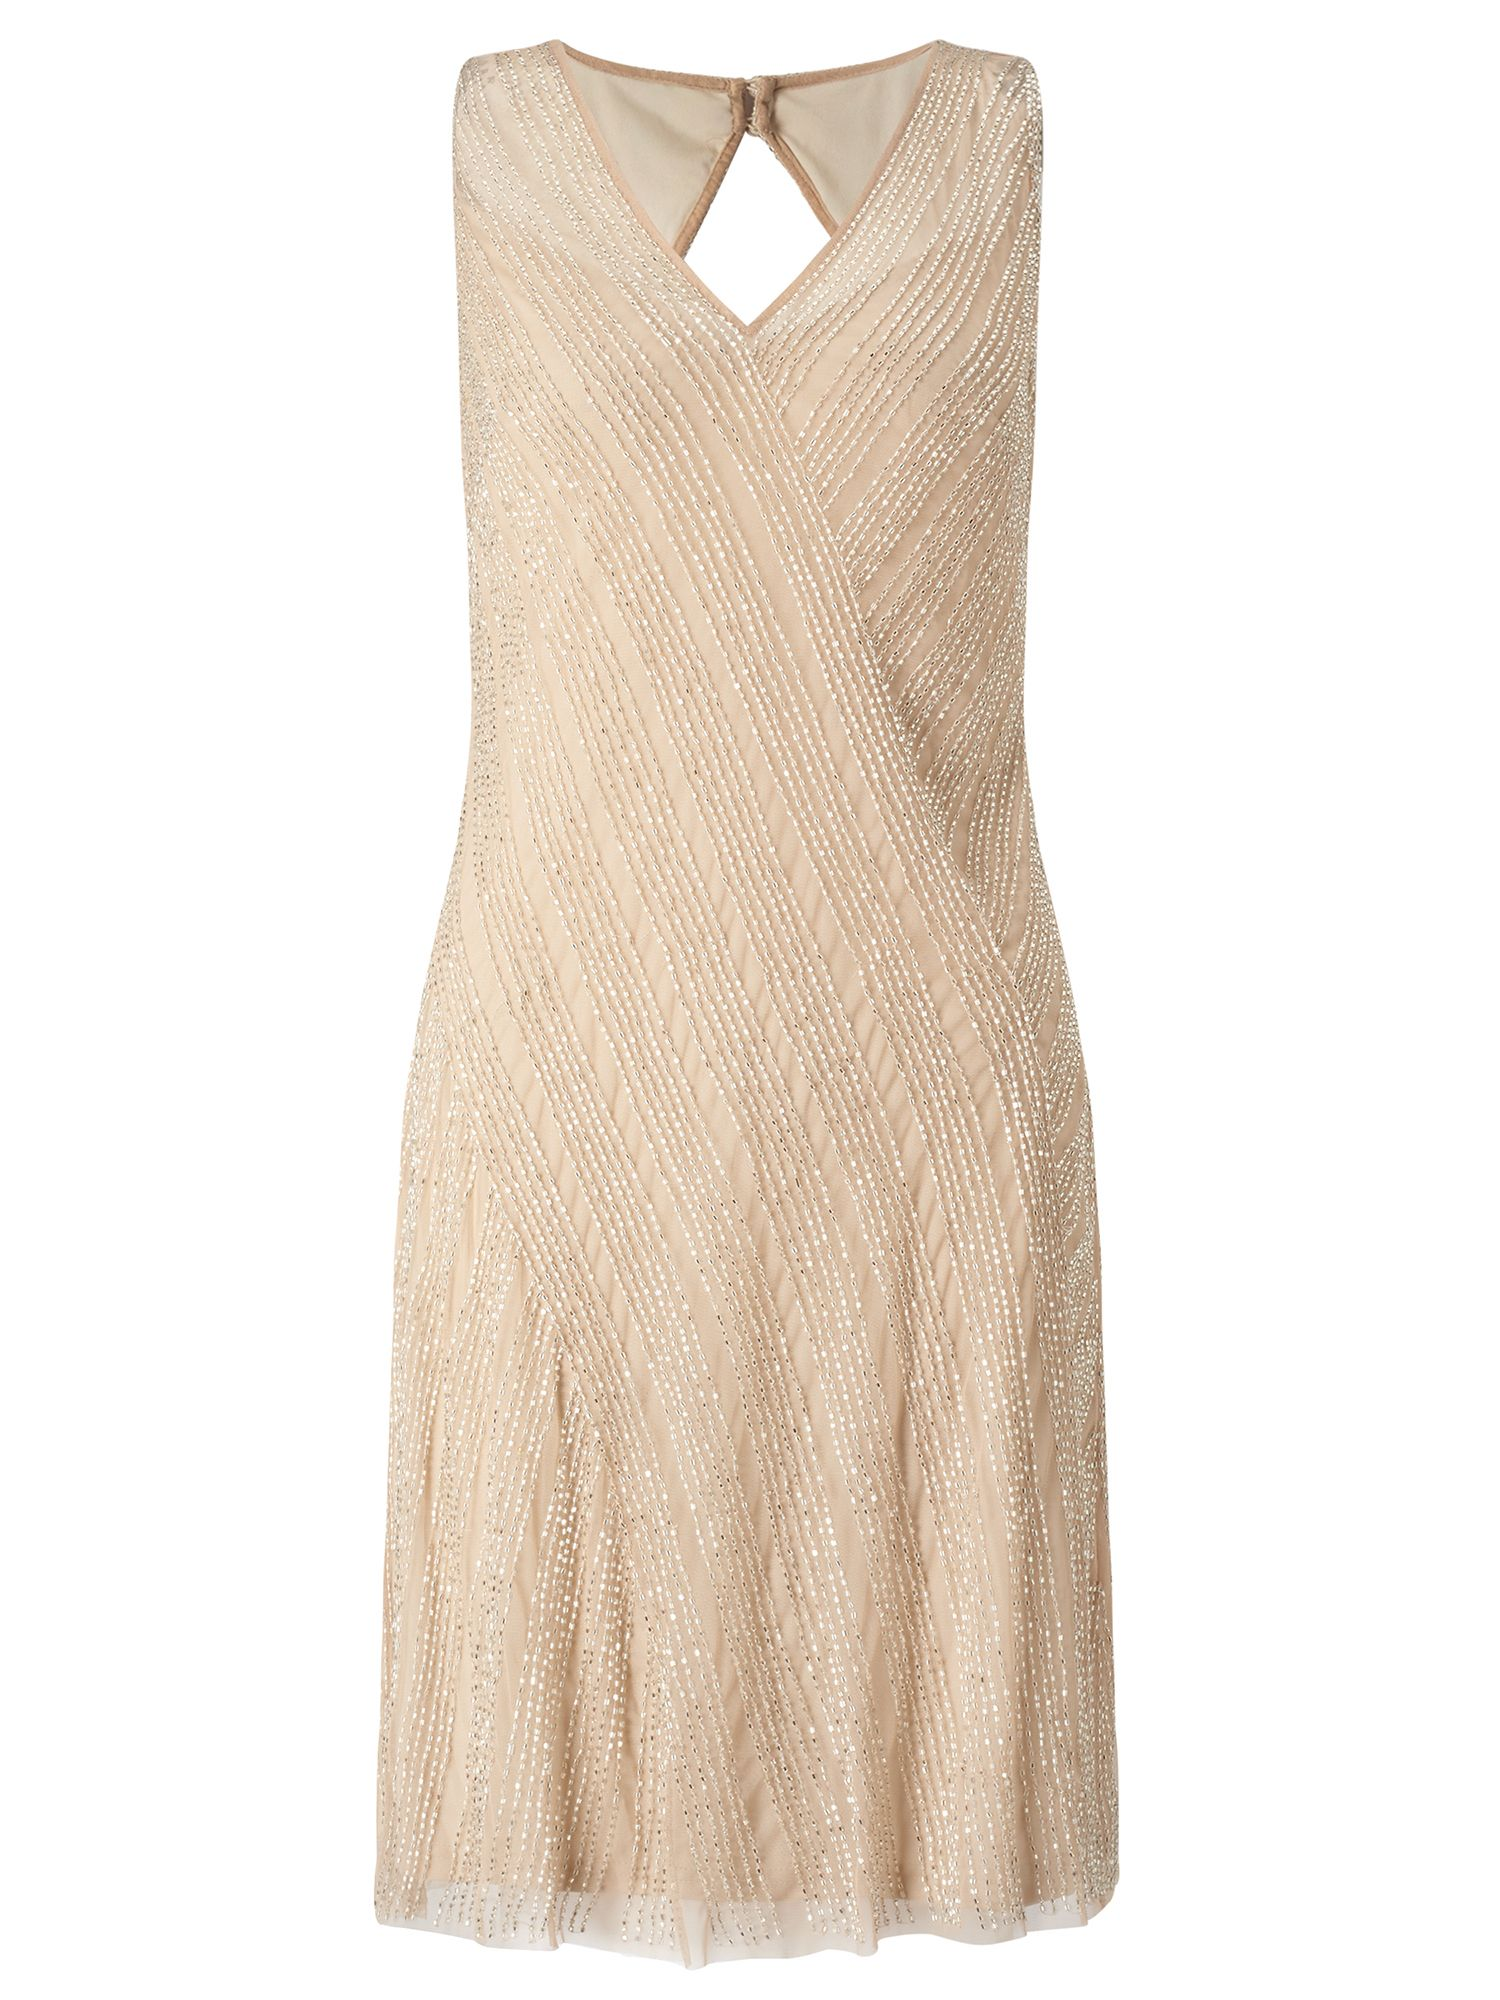 Adrianna Papell Beaded Cocktail Dress, Yellow